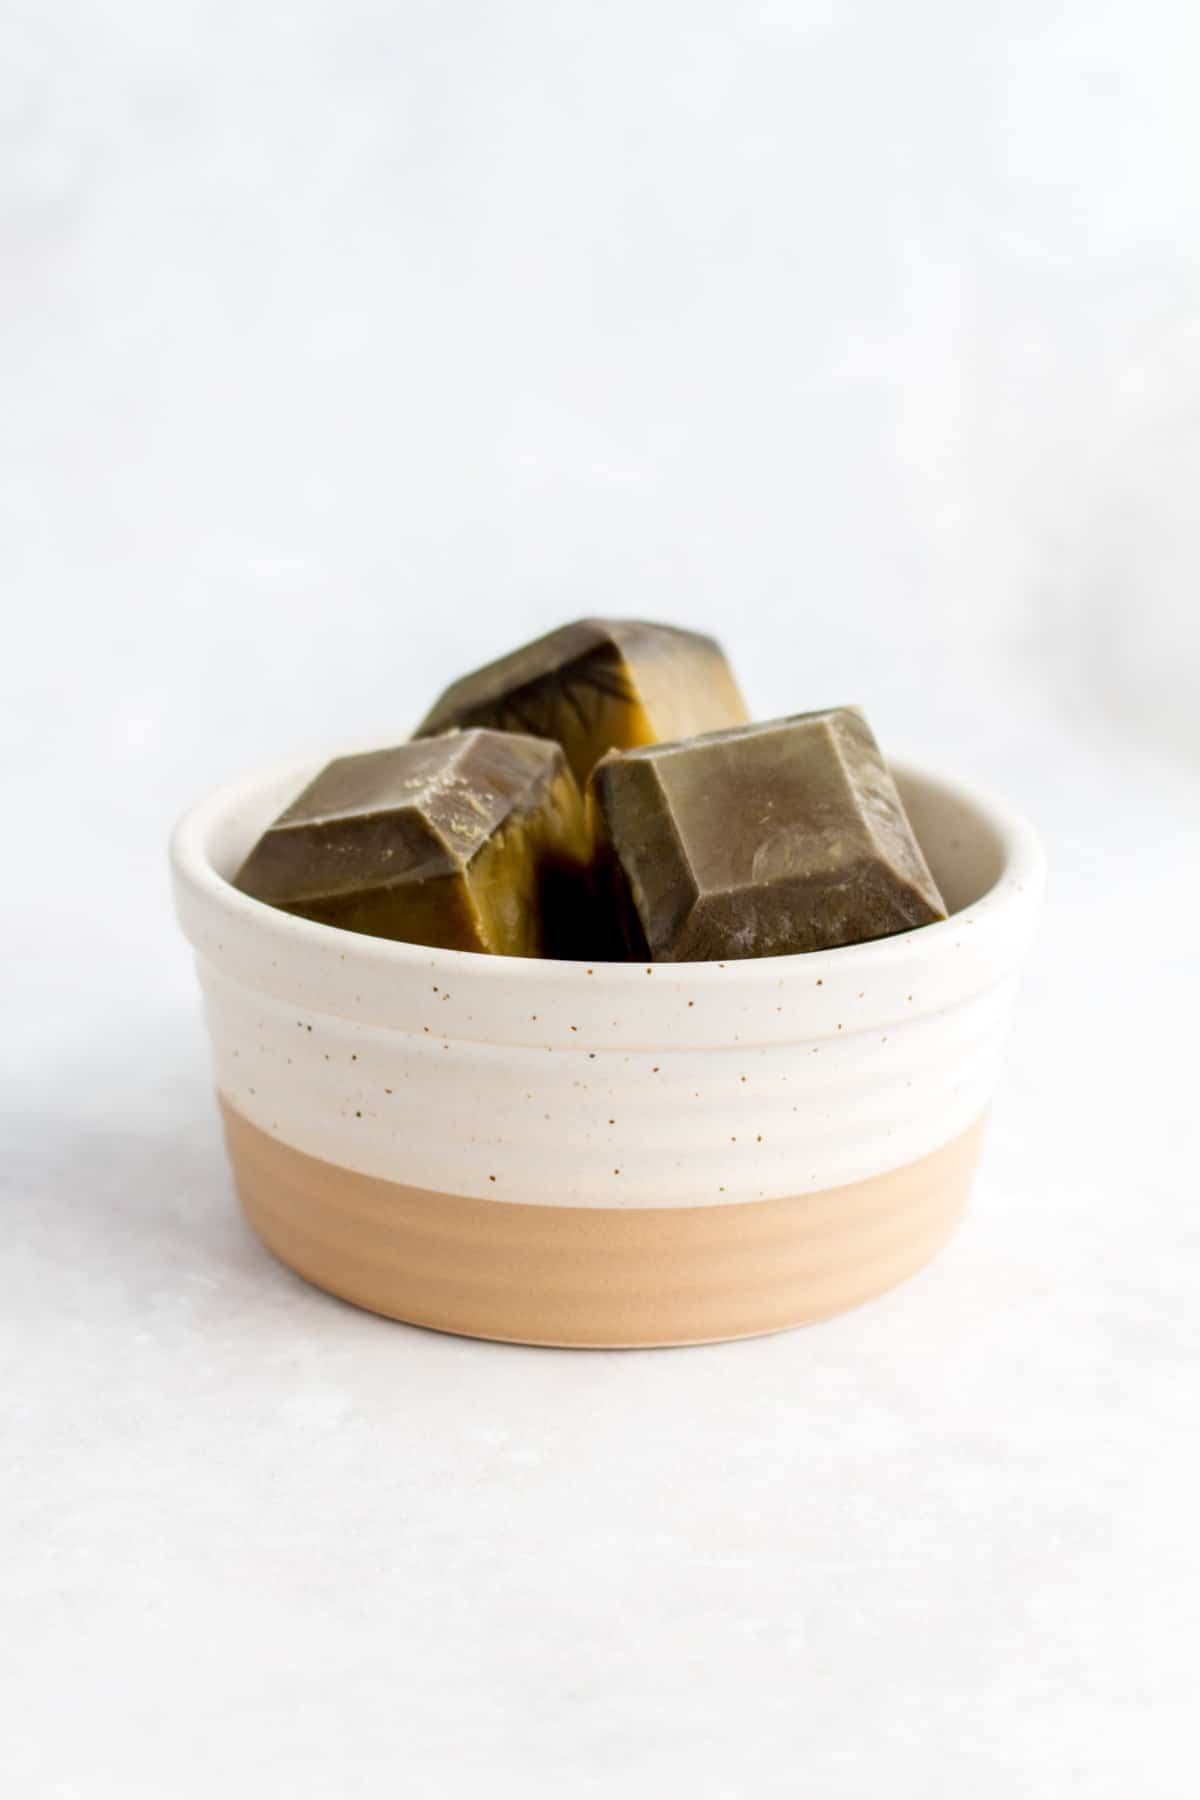 Hojicha ice cubes in a small container.